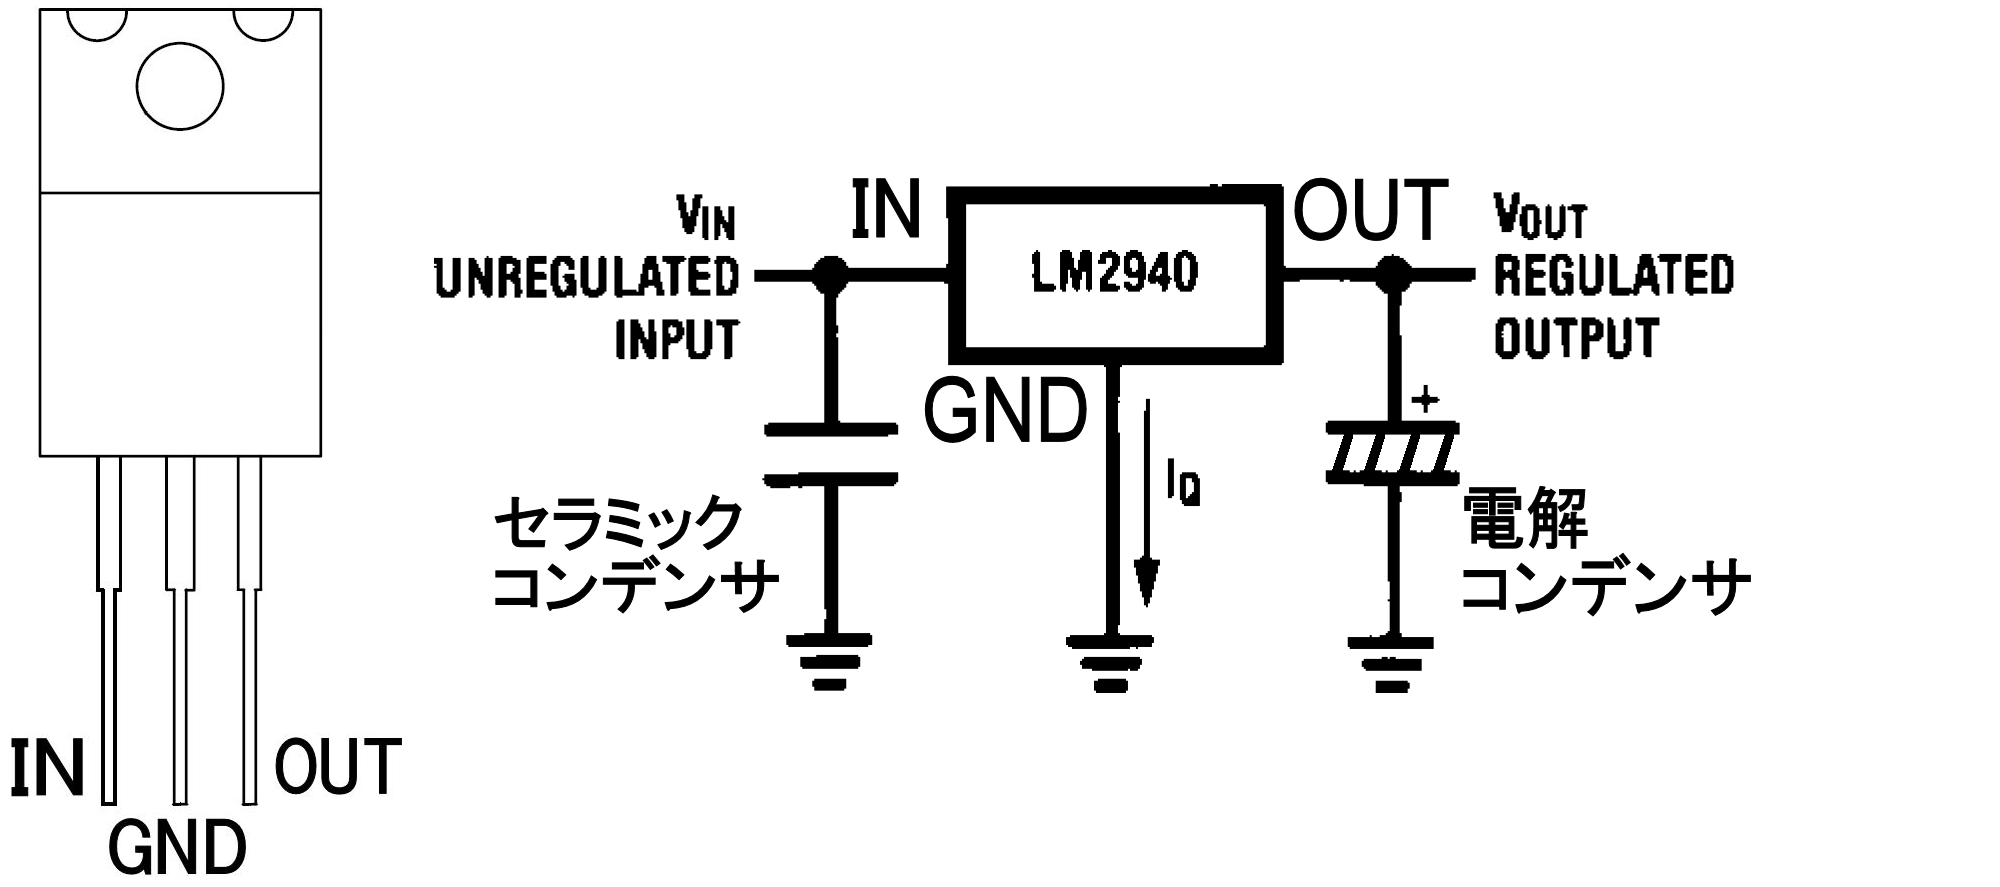 [lm2940ct-12]